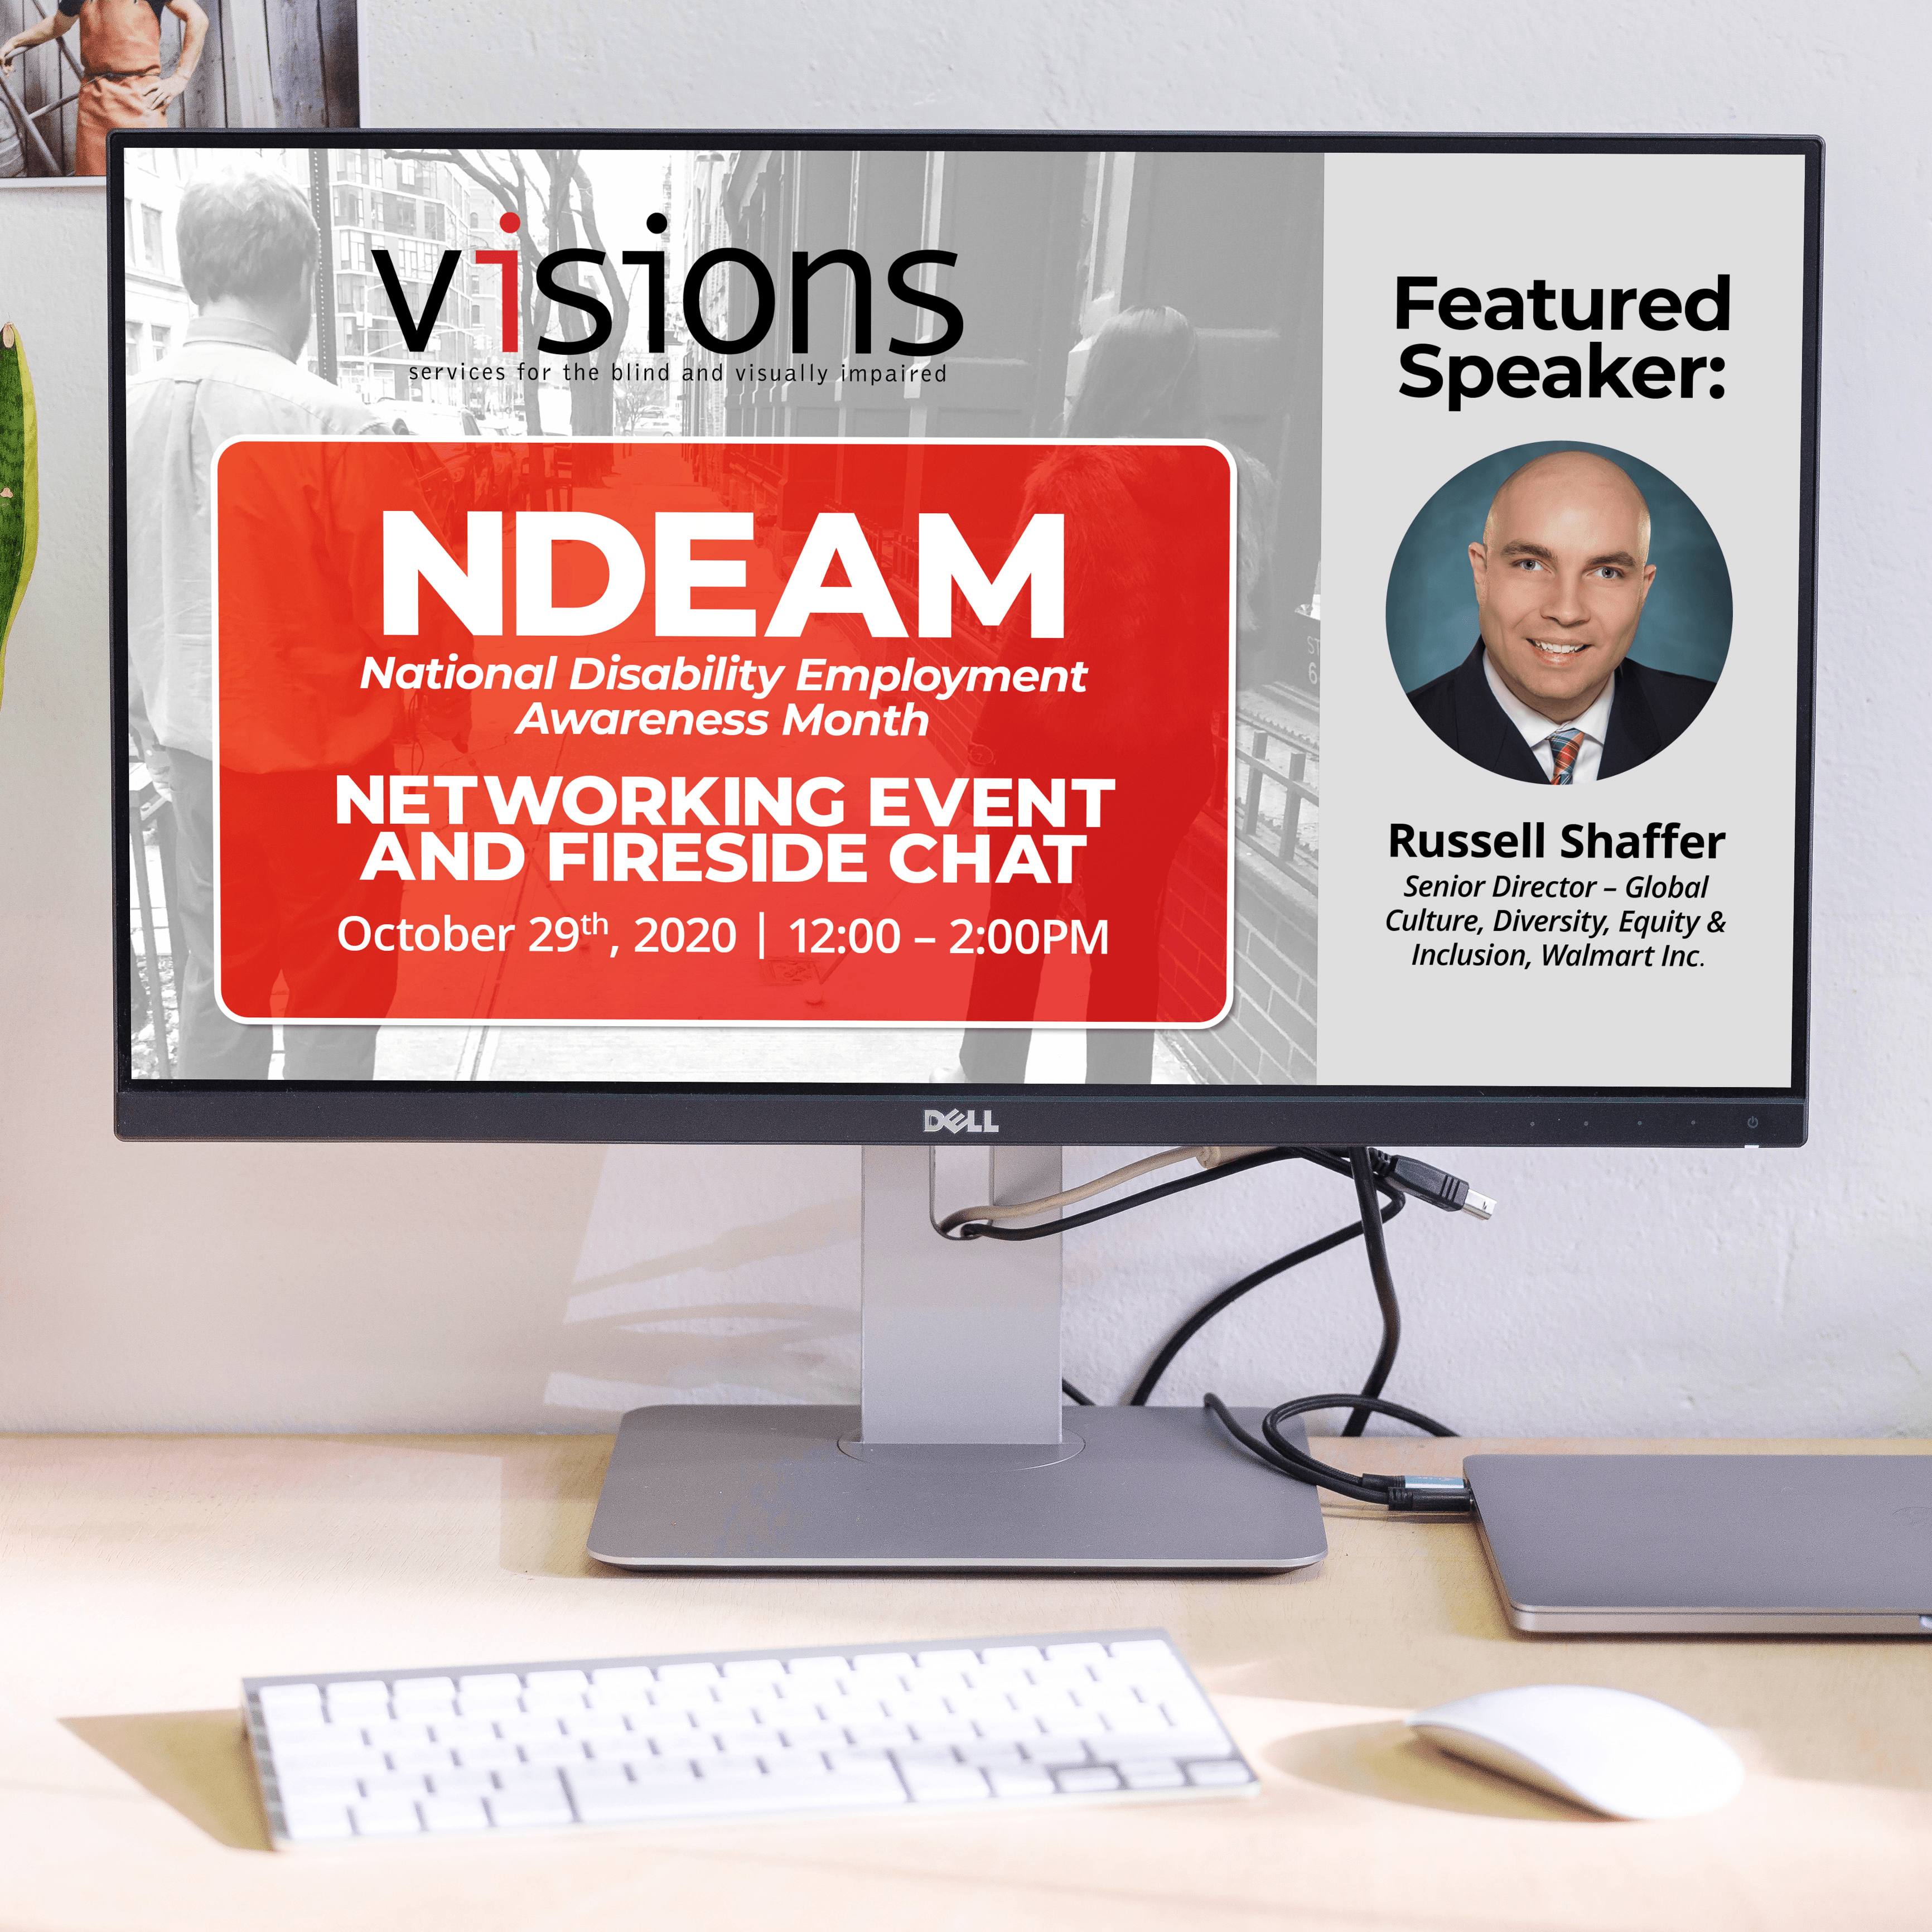 A monitor on a desk shows VISIONS NDEAM title graphic, featuring Russell Shaffer of Walmart.